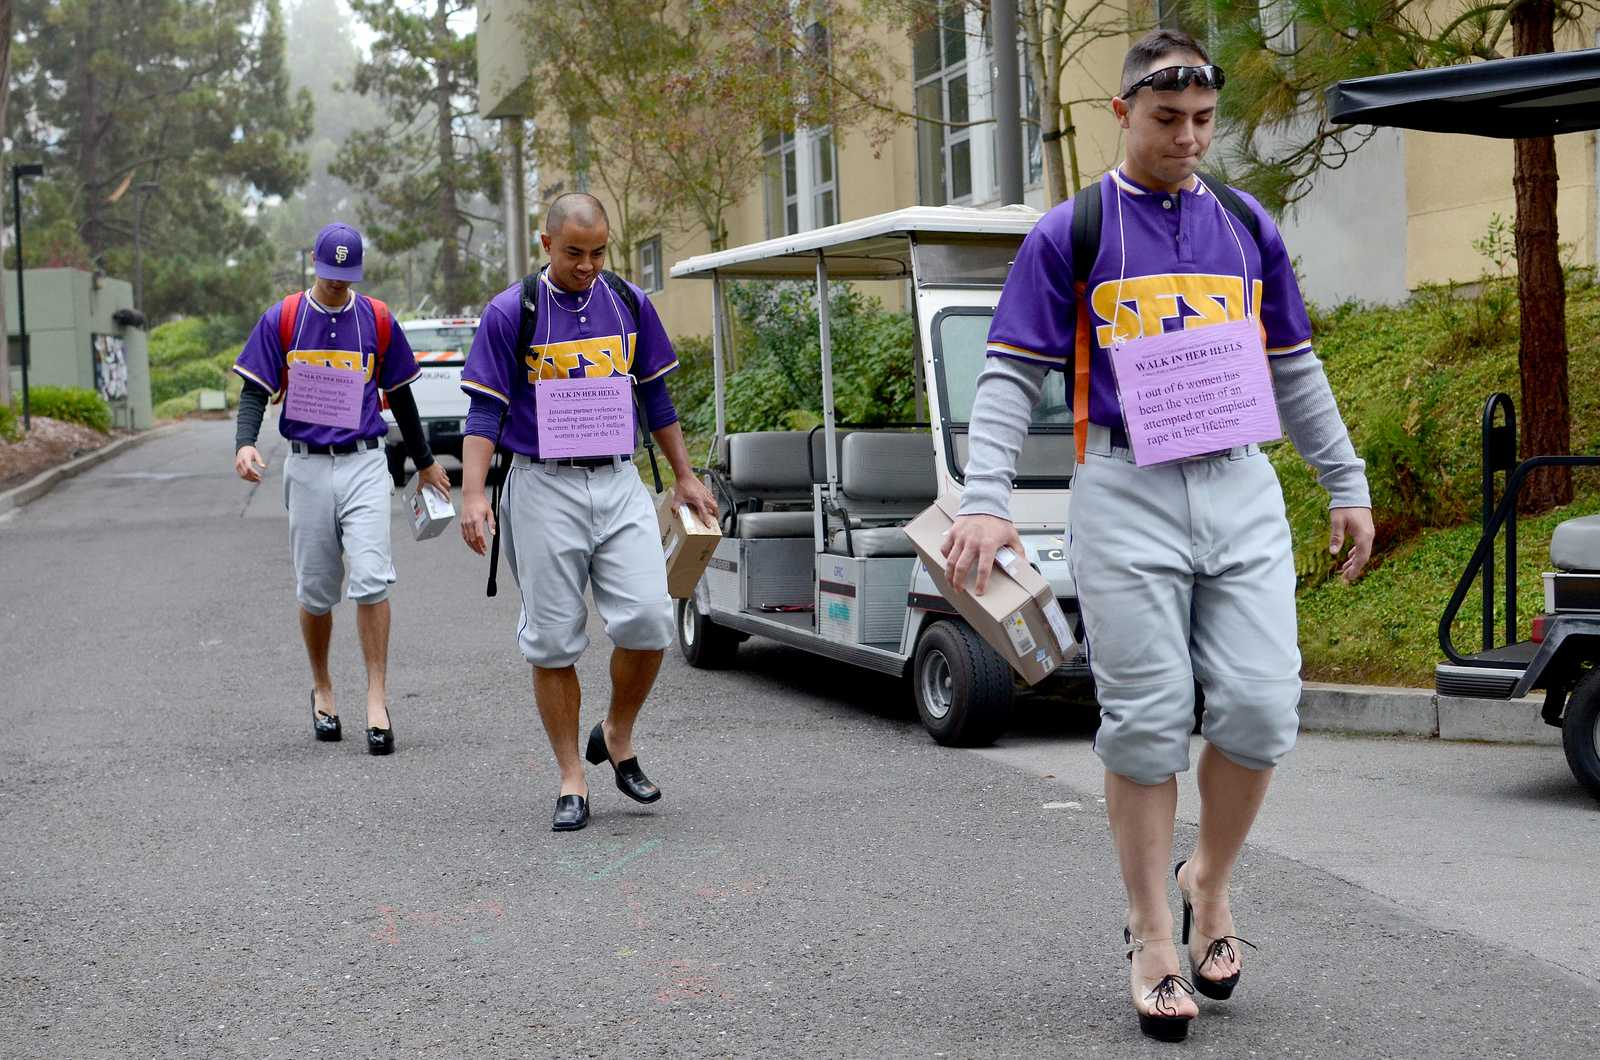 Jack Veronin (left), Peter Reyes (middle) and Carter Loud (right), members of the SF State baseball team, walk in heels for The SAFE Place and Men Can Stop Violence event titled: Walk in Her Heels. This event is a men's walk to stop rape, sexual assault, and gender violence. Men volunteers sign up, pick up heels and go about their normal days wearing these shoes and collecting donations with a shoe box until noon where the men come together in Malcolm X Plaza at SF State on Tuesday, October 22 to share their experience, if they so choose. Photo by Virginia Tieman / Xpress